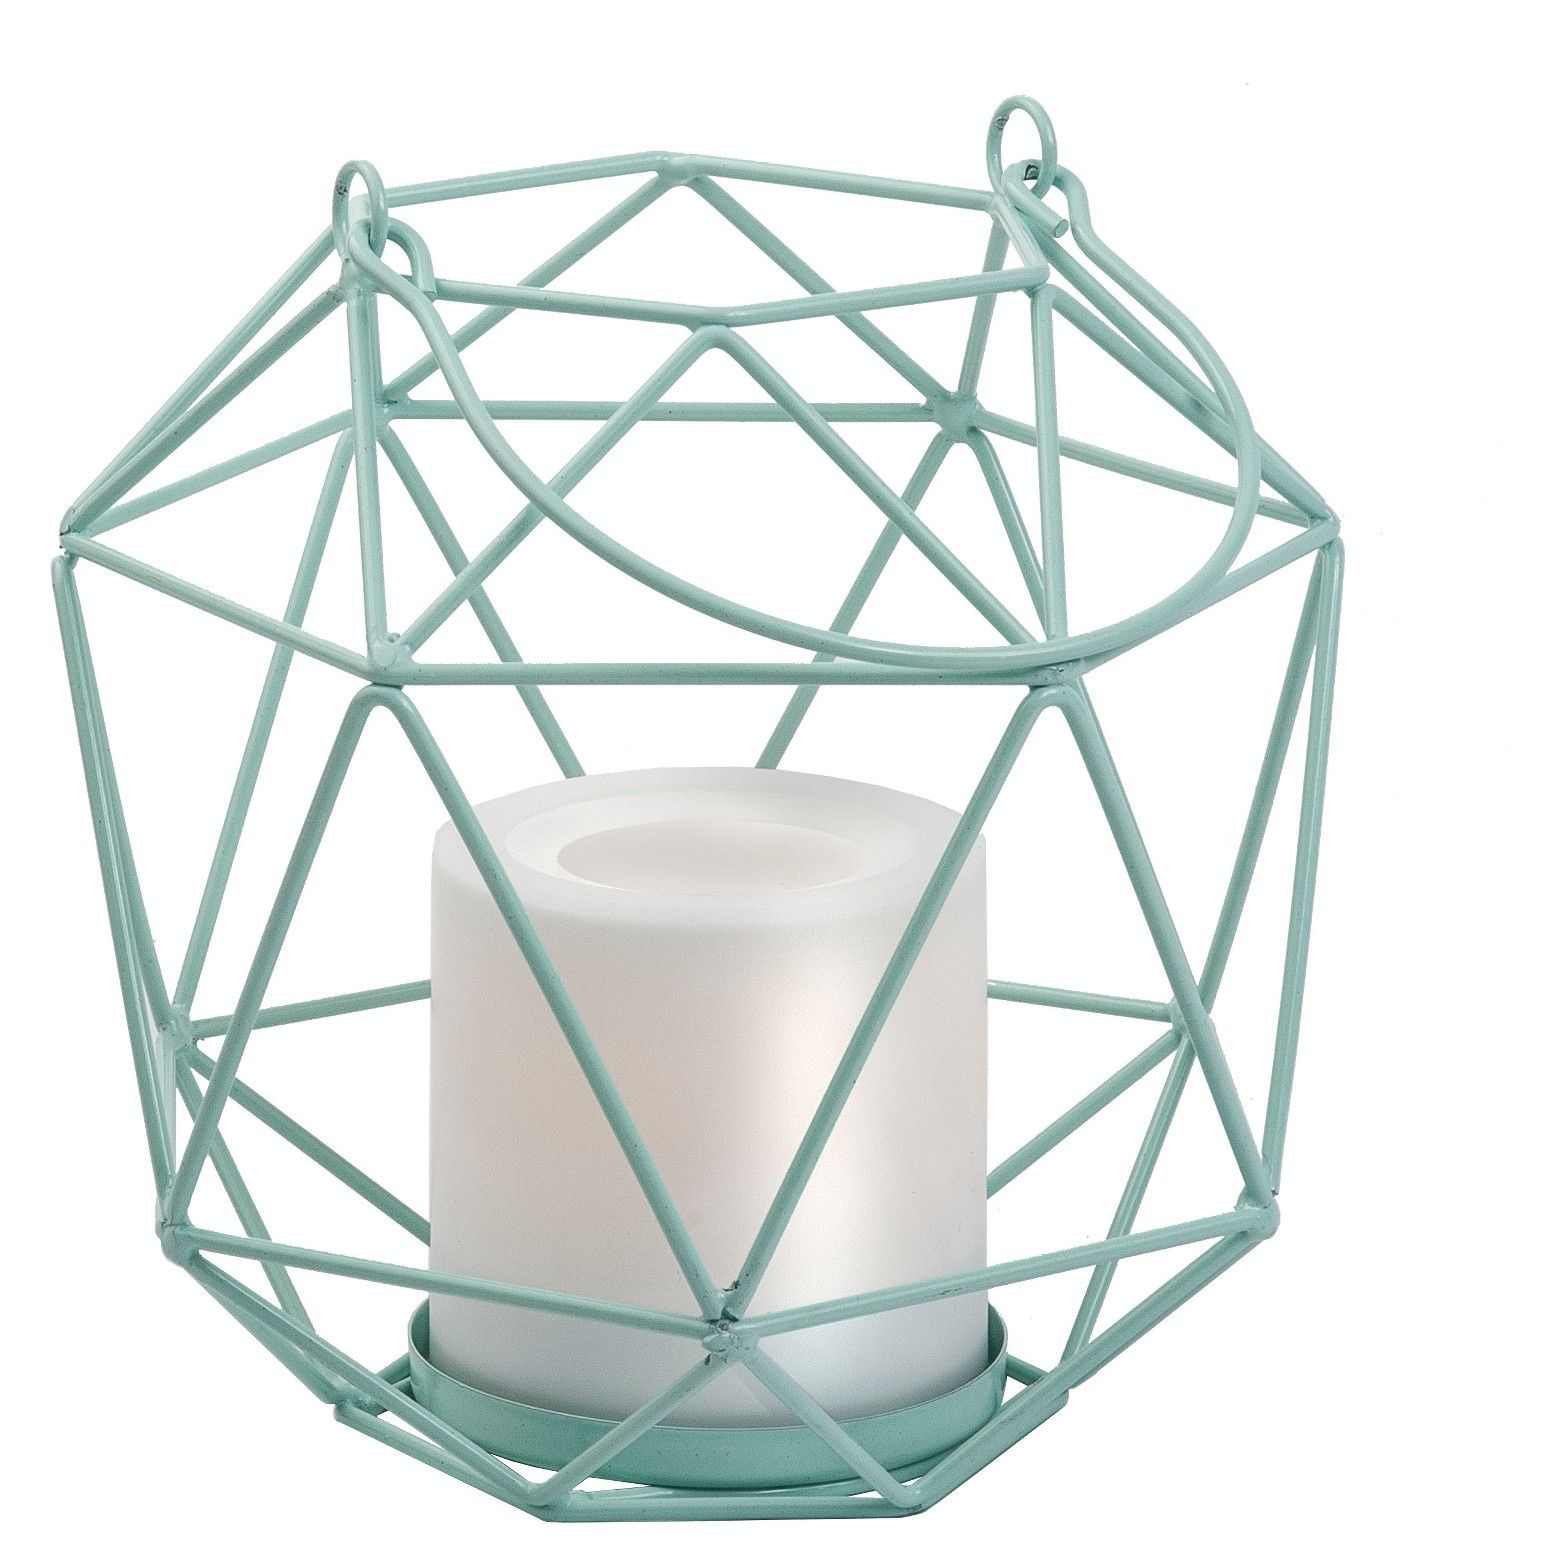 Add A Contemporary Design Element To Your Garden Or Patio Area With The Room Essentials 6 Quo Metal Lanterns Battery Operated Lanterns Battery Operated Candles